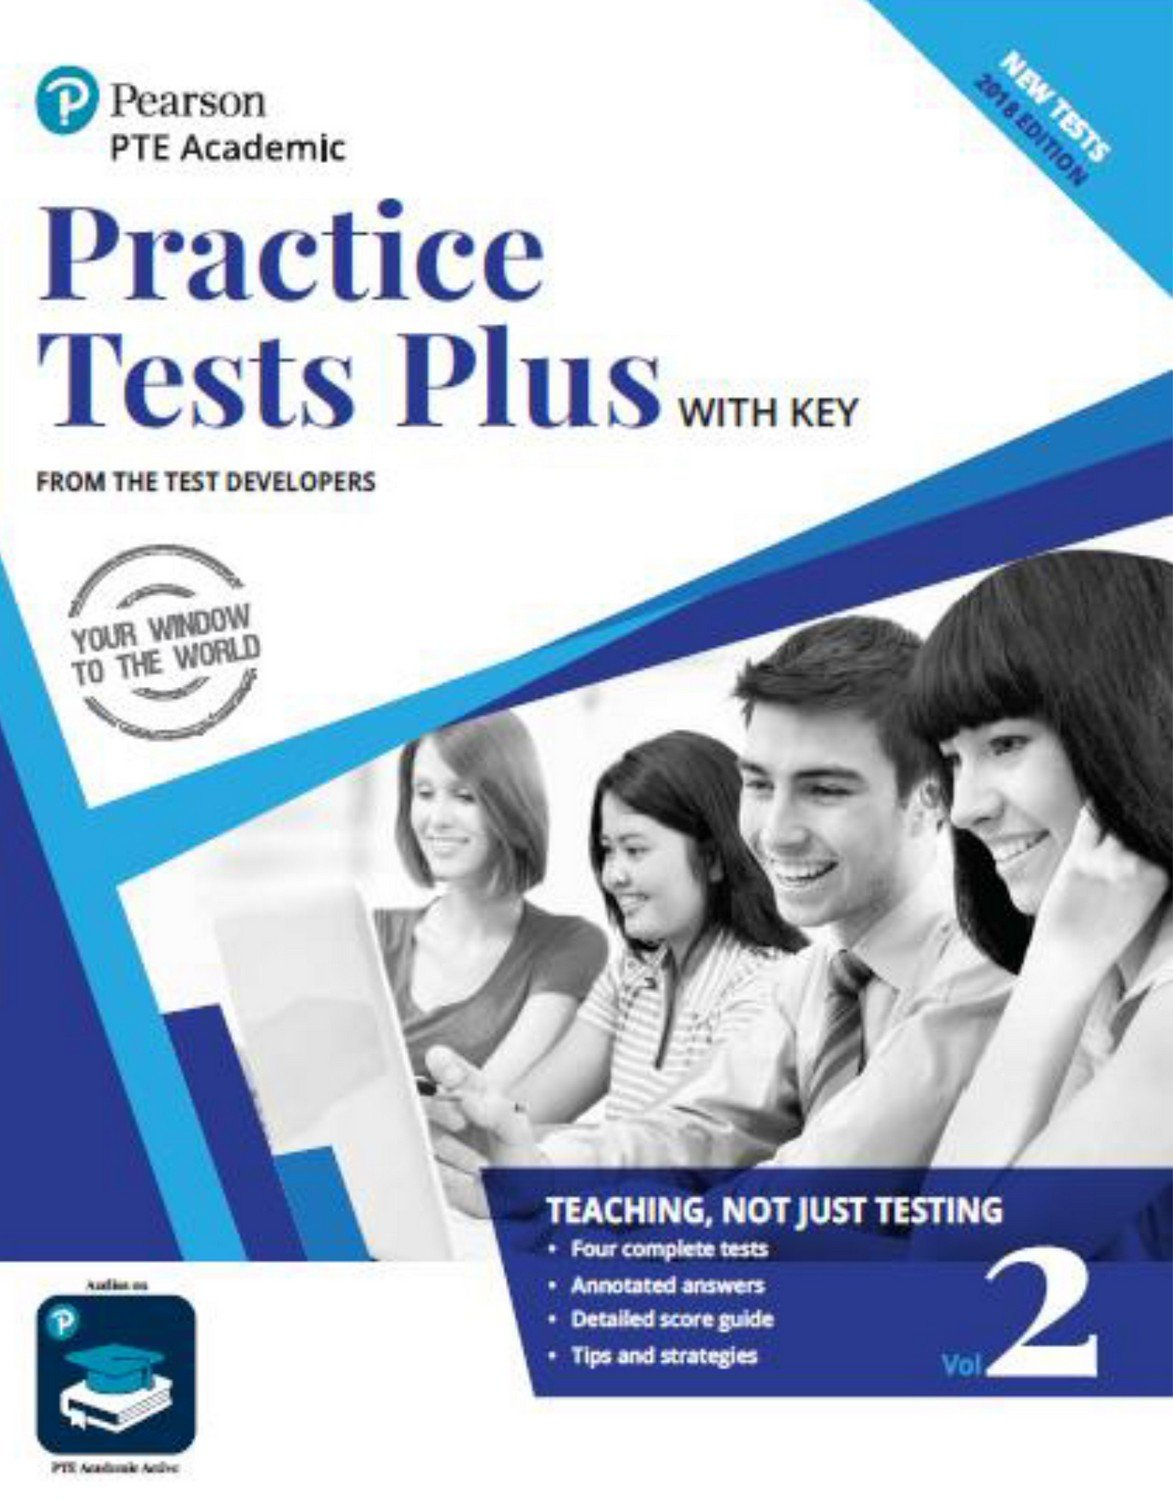 PTE book - practice tests plus 2